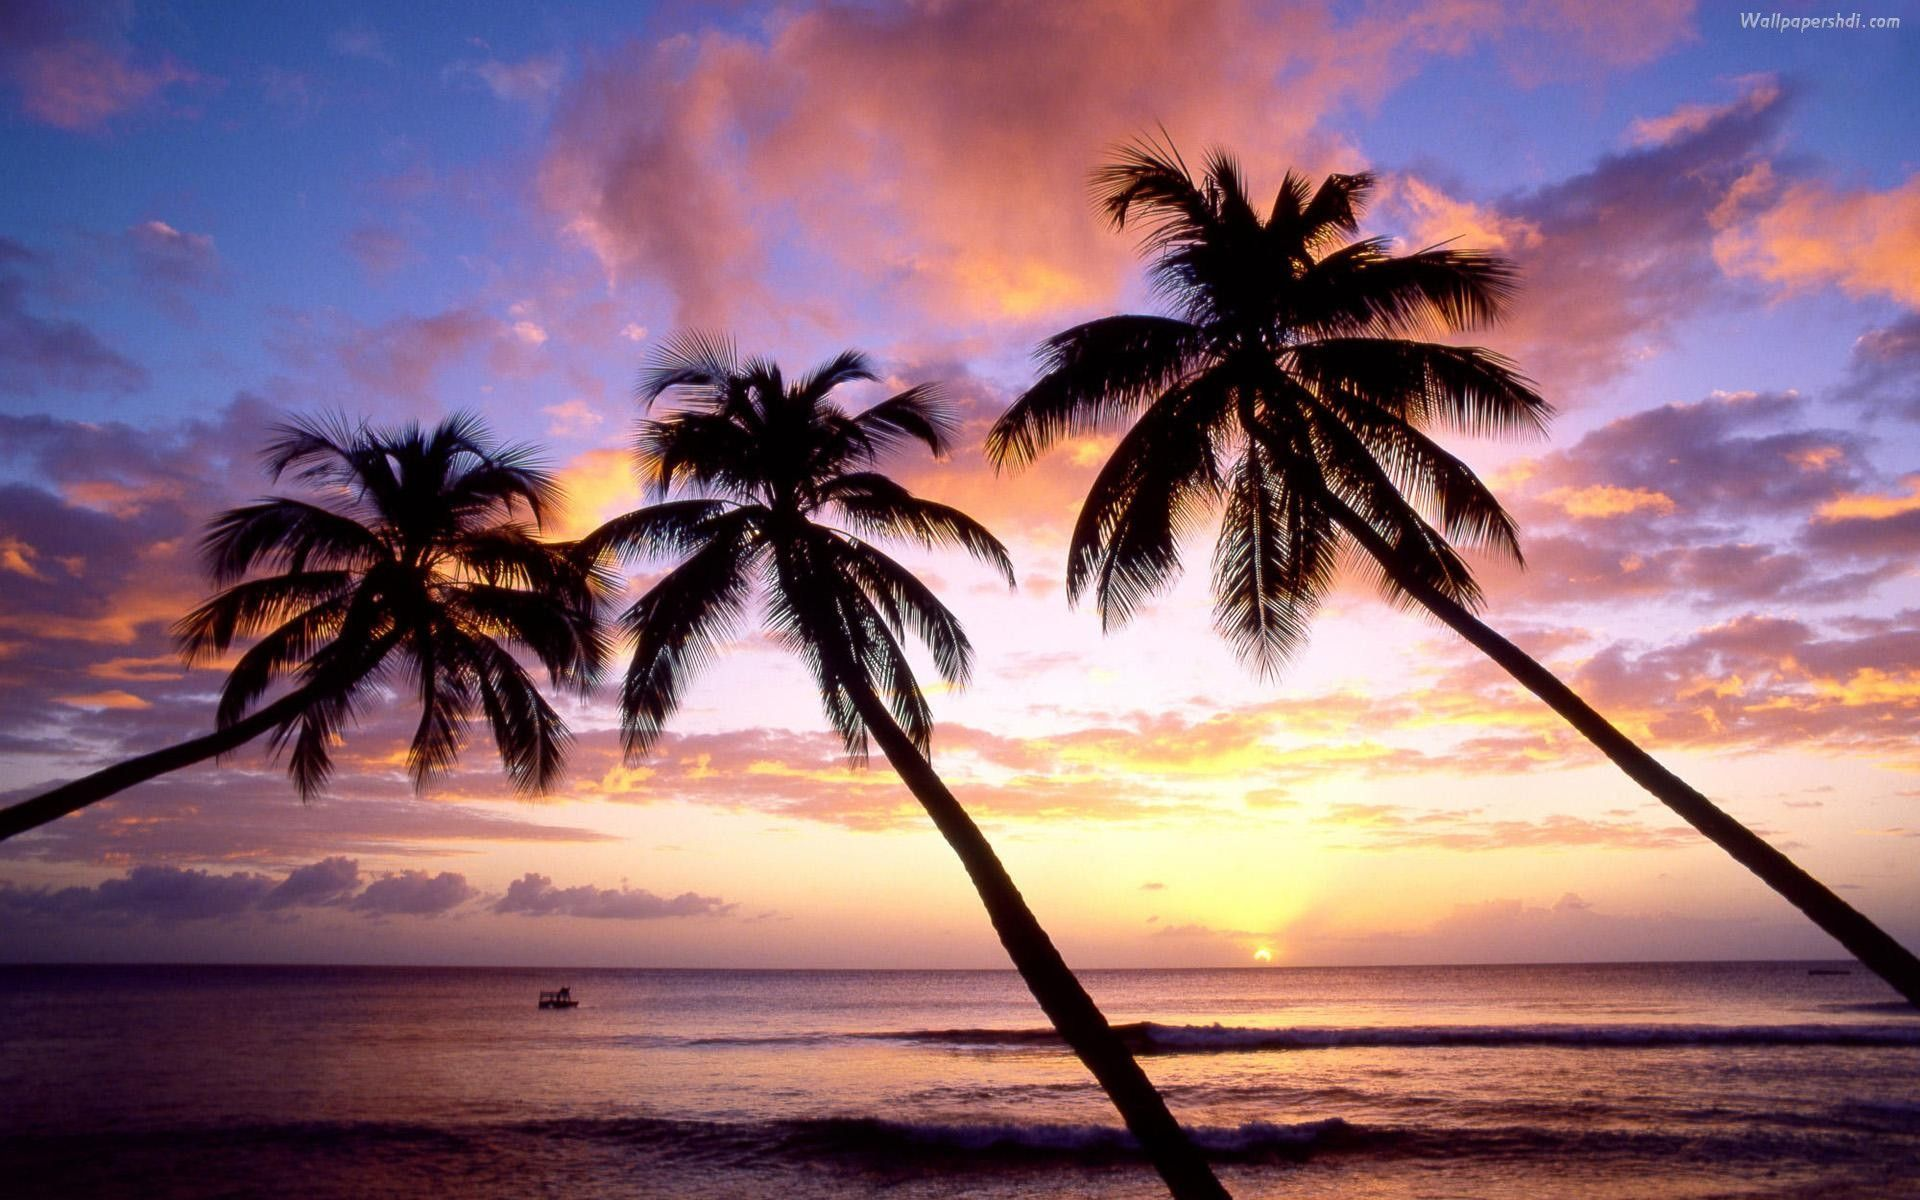 Wallpaper Palm Tree Android Apps on Google Play Epic